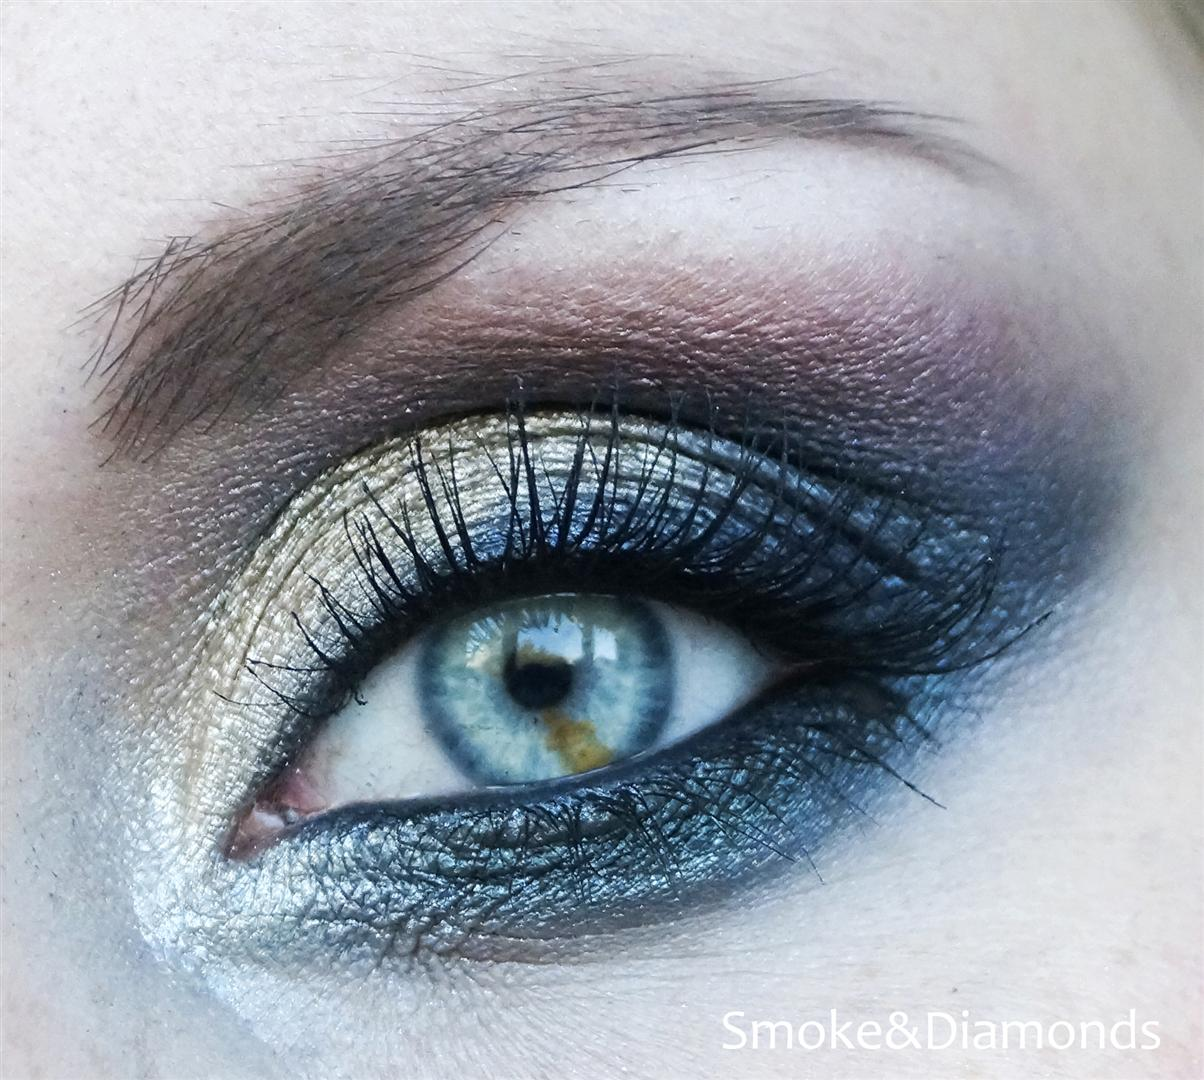 http://www.smokeanddiamonds.de/2014/10/sleek-week-ii-das-auge-im-sturm.html